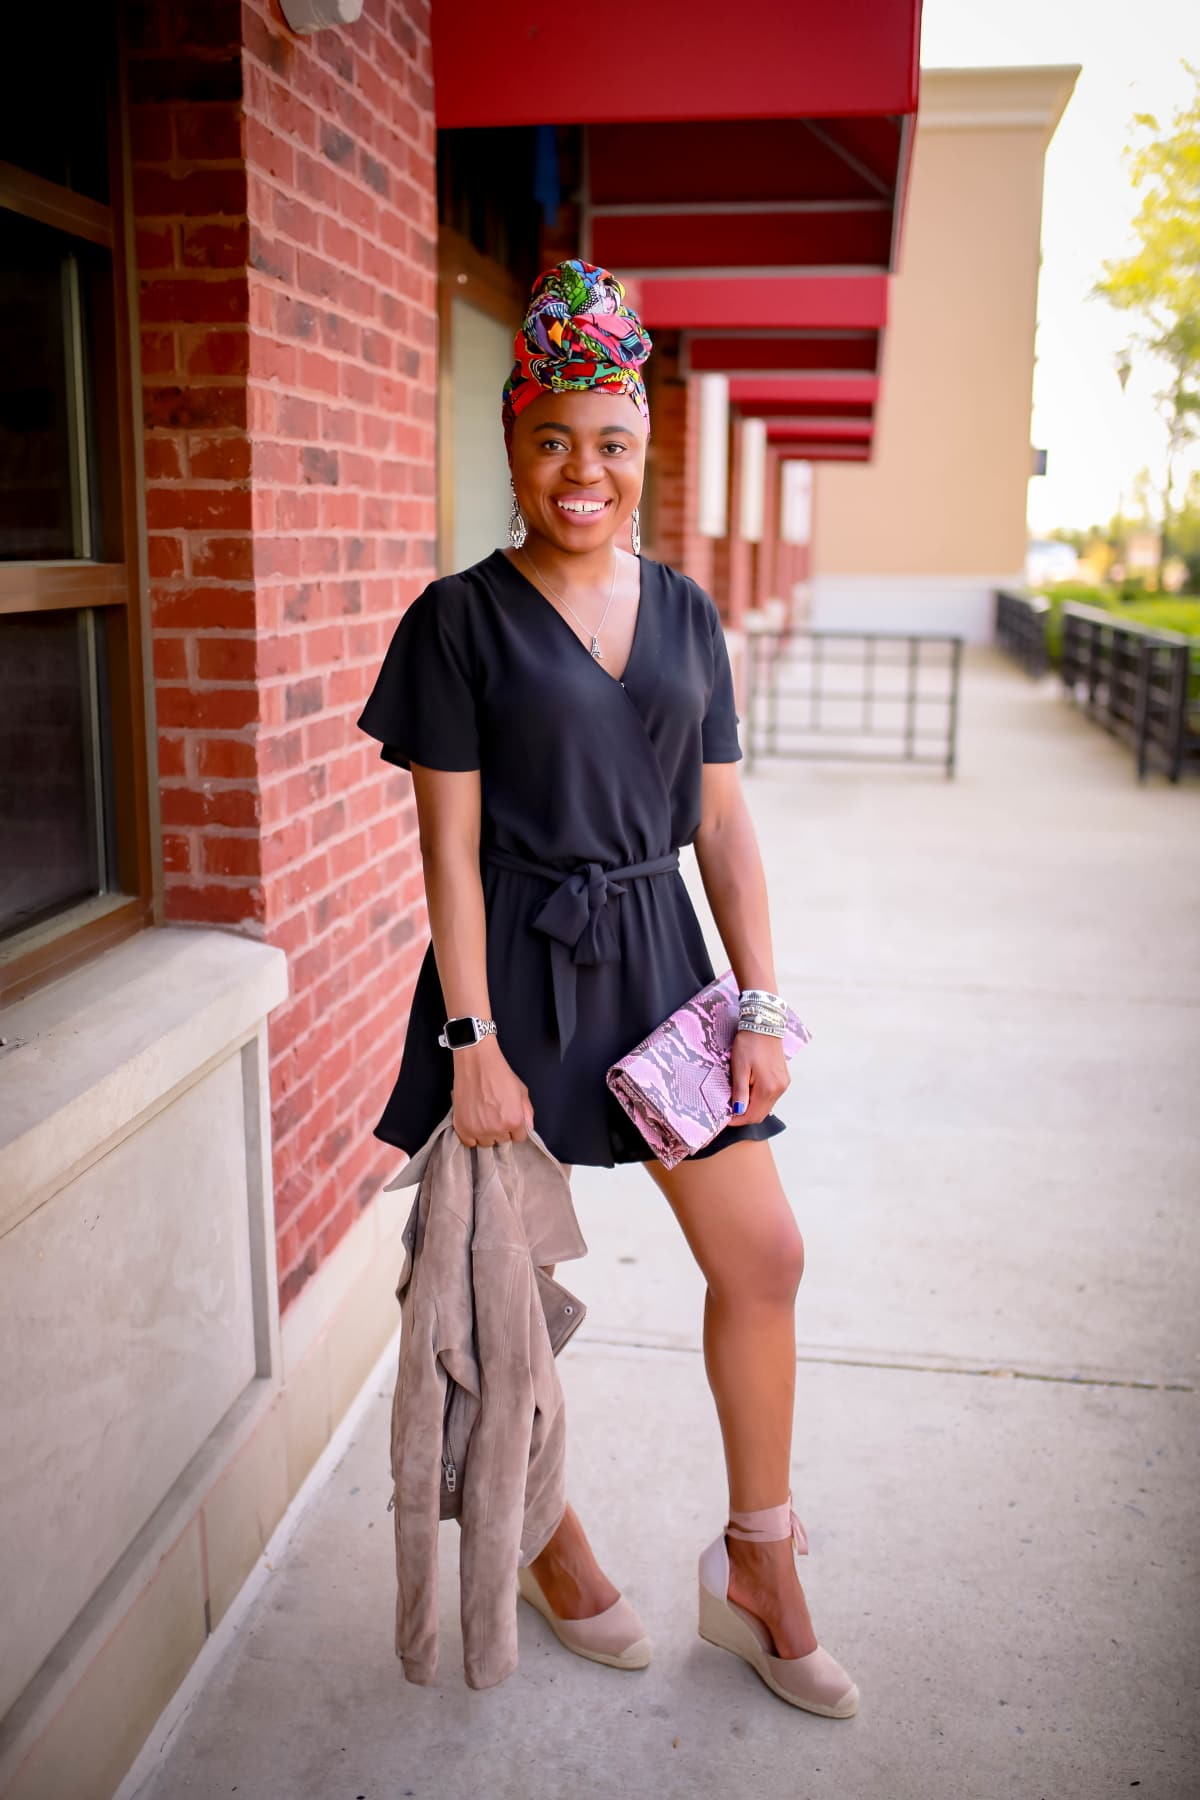 Fashion and style blogger, Louisa Moje shares three practical looks to wear this summer. IF you've always been at a loss on how to style a romper, read this post. Get three practical outfit ideas on how to style a black romper from work style, everyday casual, to date night look. #datenight #everydaystyle #casualstyle